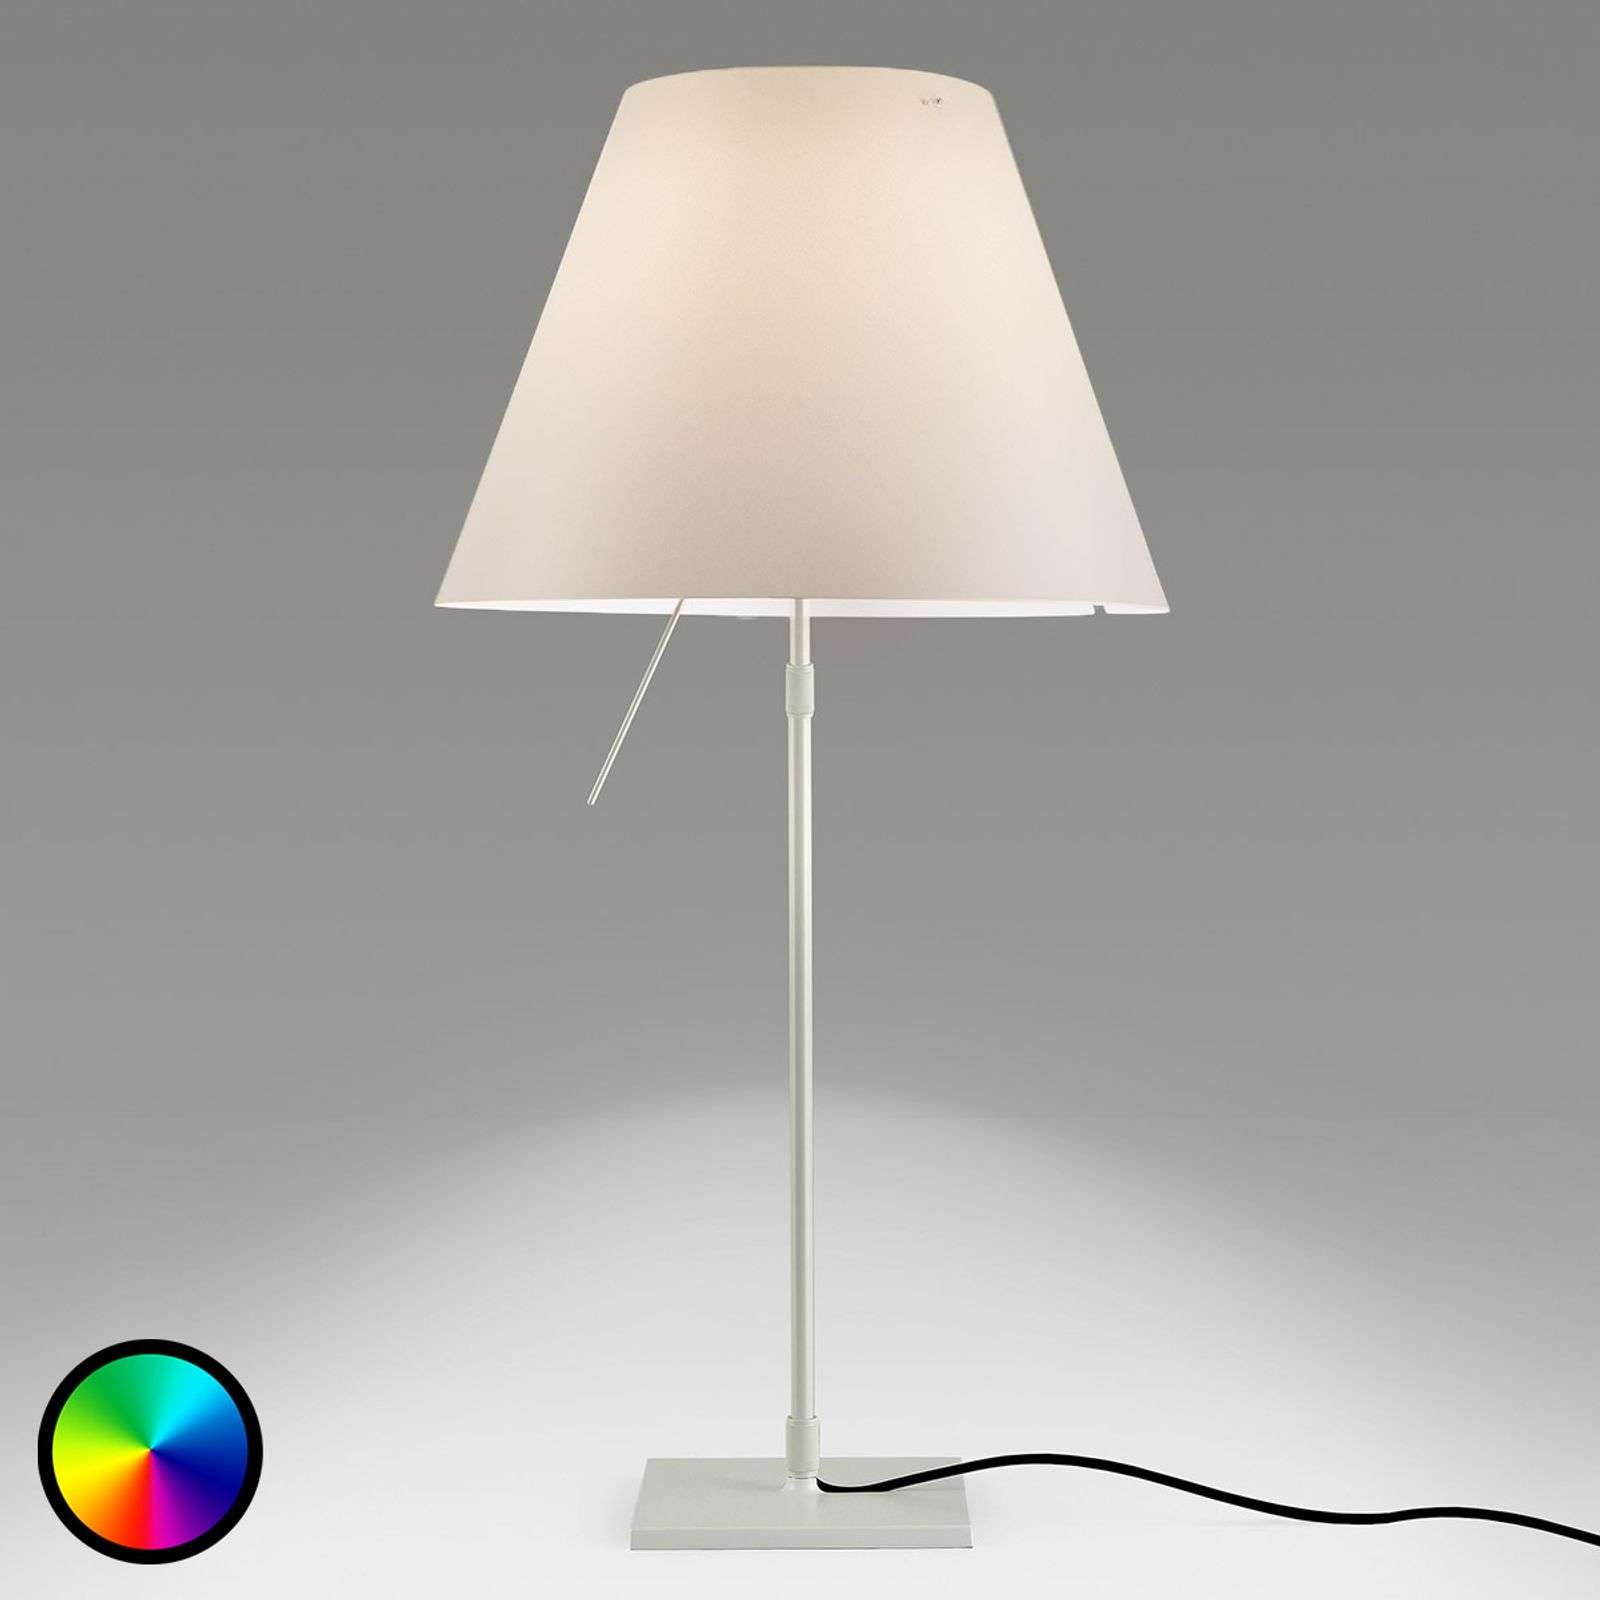 Reguleerbare Philips Hue LED tafellamp Constanza